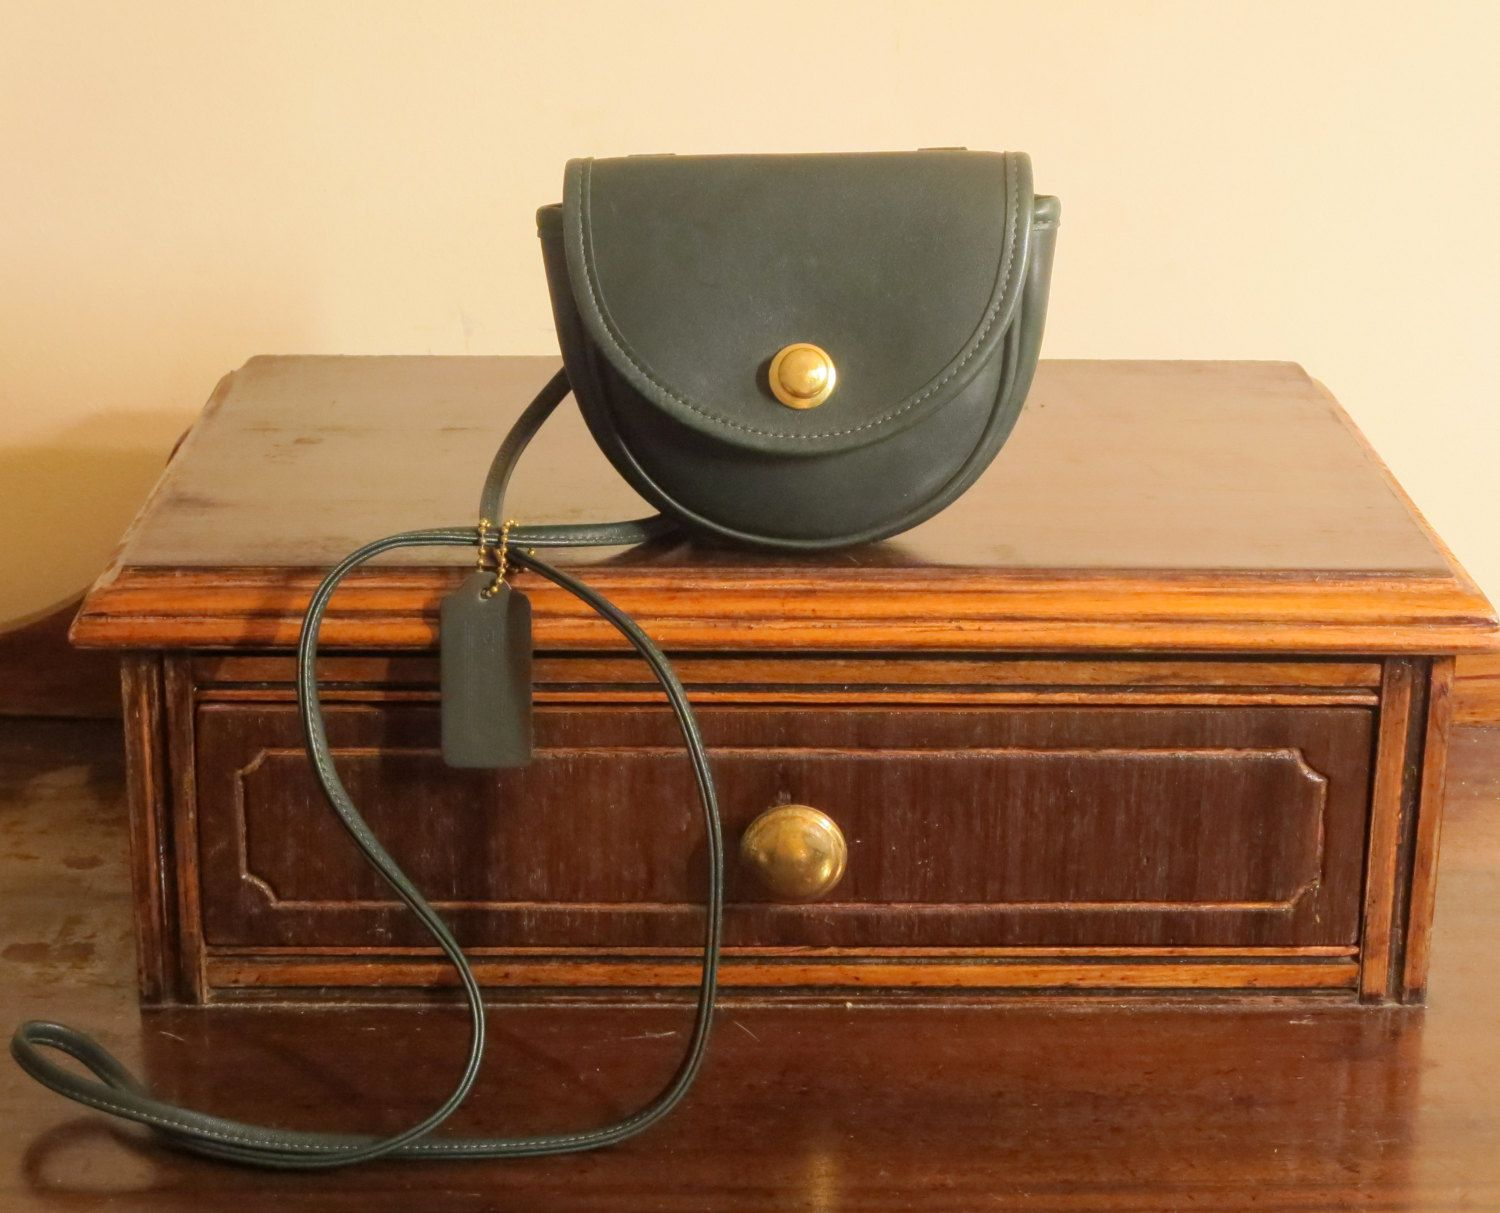 Coach Mini Belt Bag In Green Leather With Cross Body Strap # 9826- Made in U.S.A - Very Good Condition by ProVintageGear on Etsy